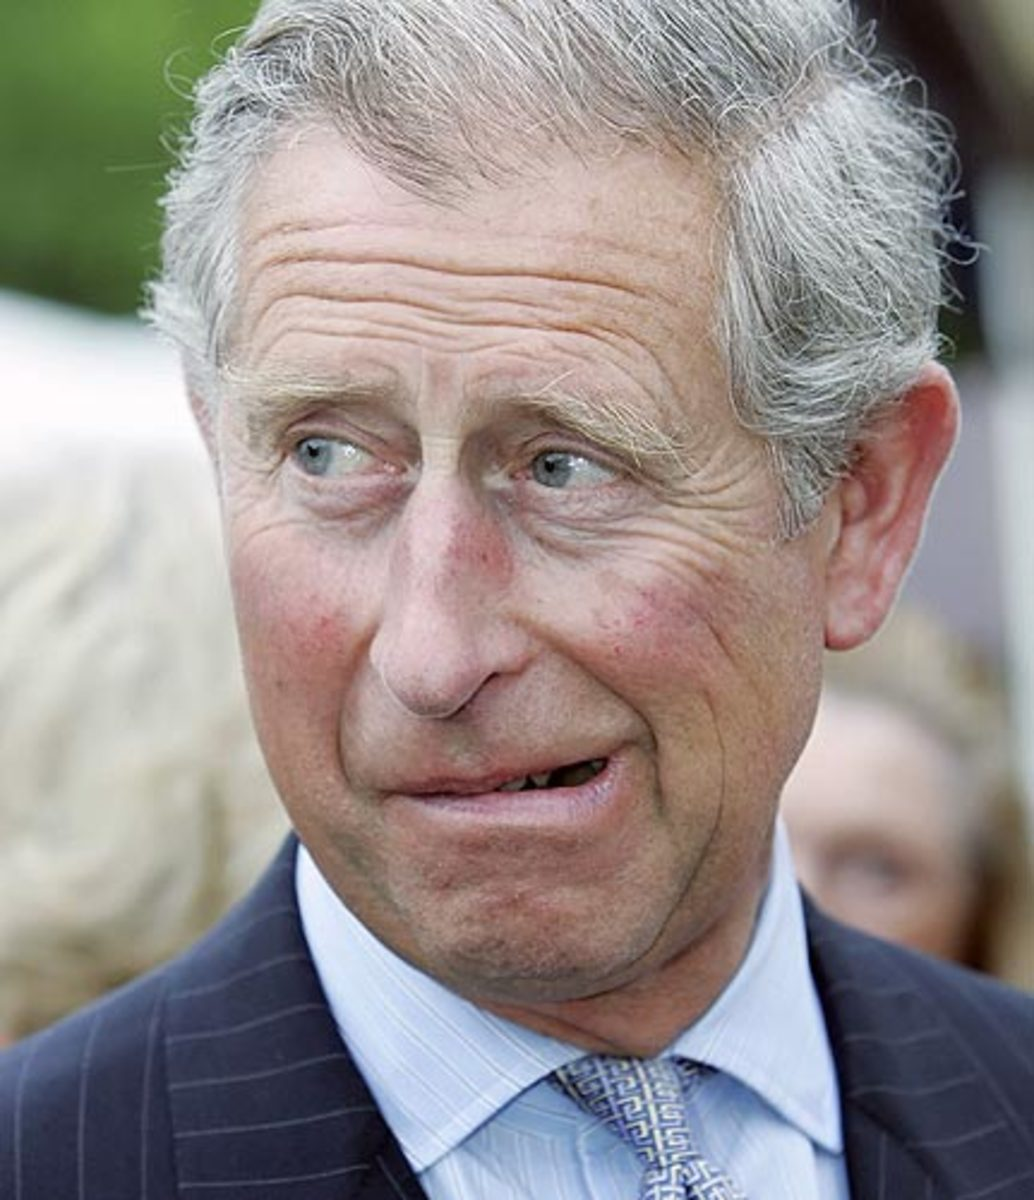 Prince Charles photographed on his 60th birthday